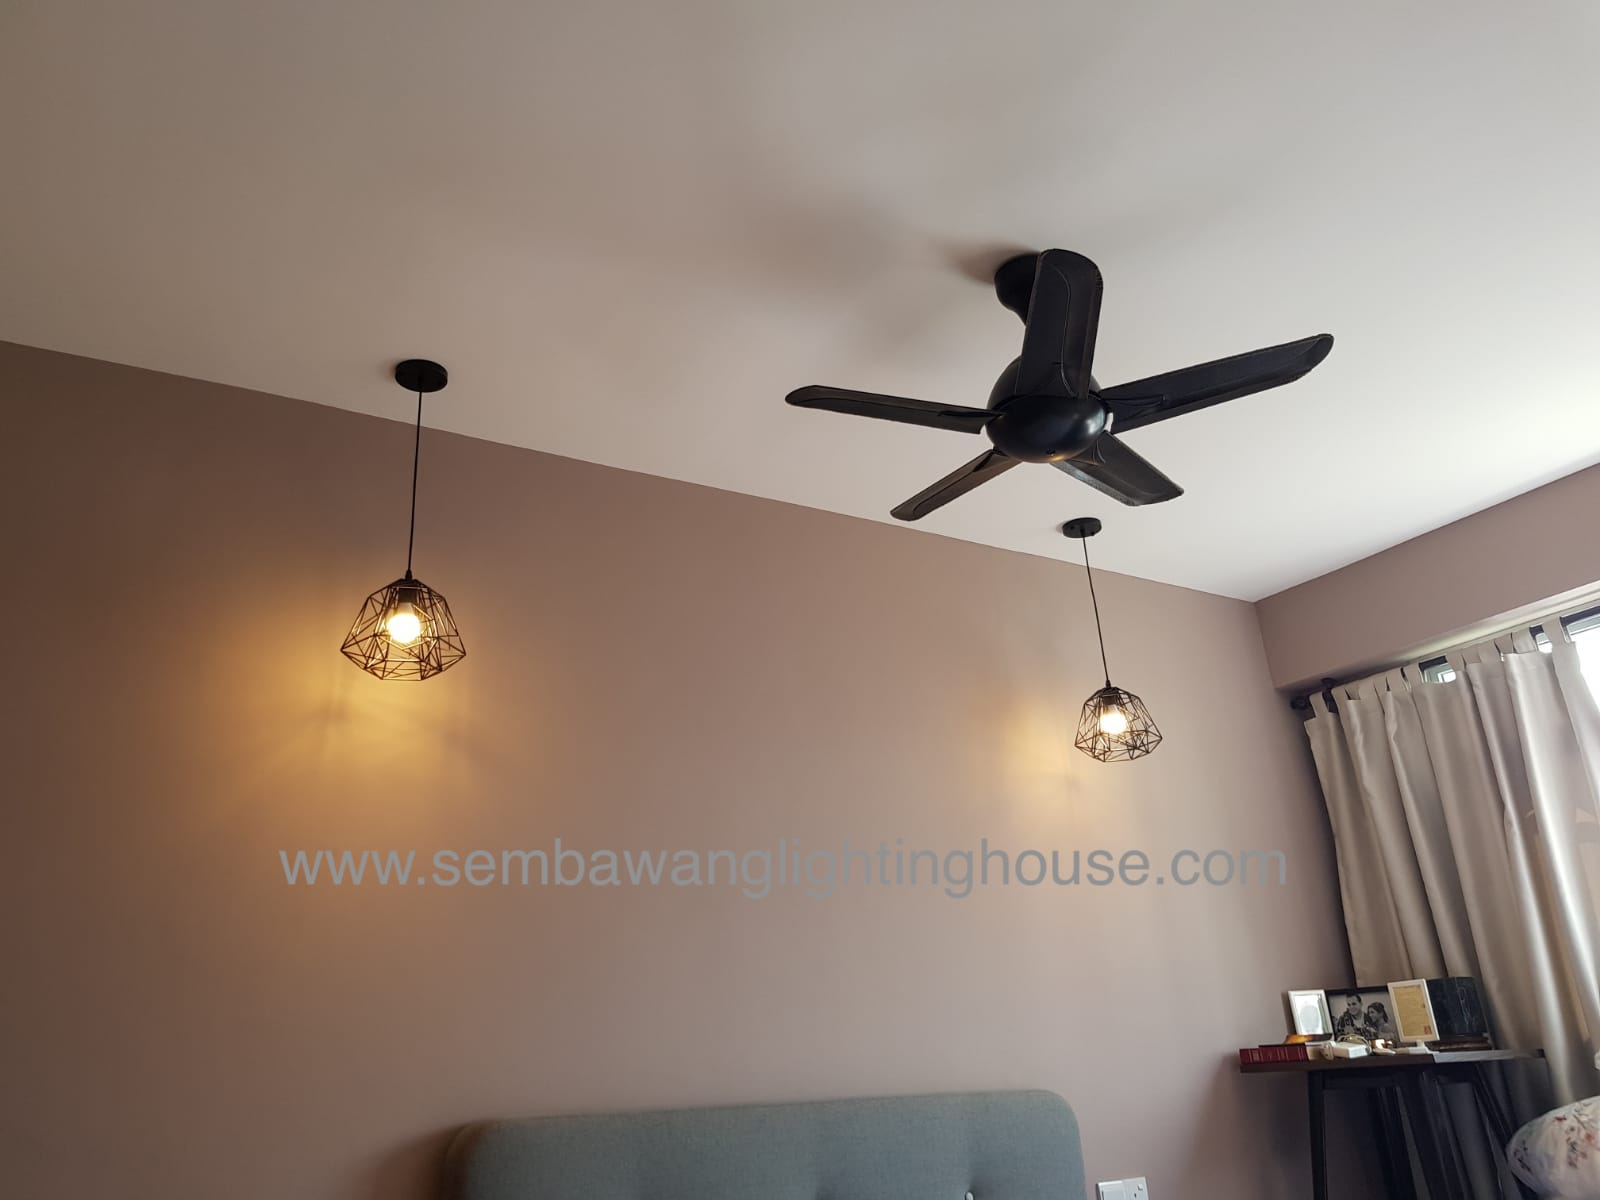 12-led-bedside-pendant-and-ceiling-fan-condo-sembawang-lighting-house.jpg